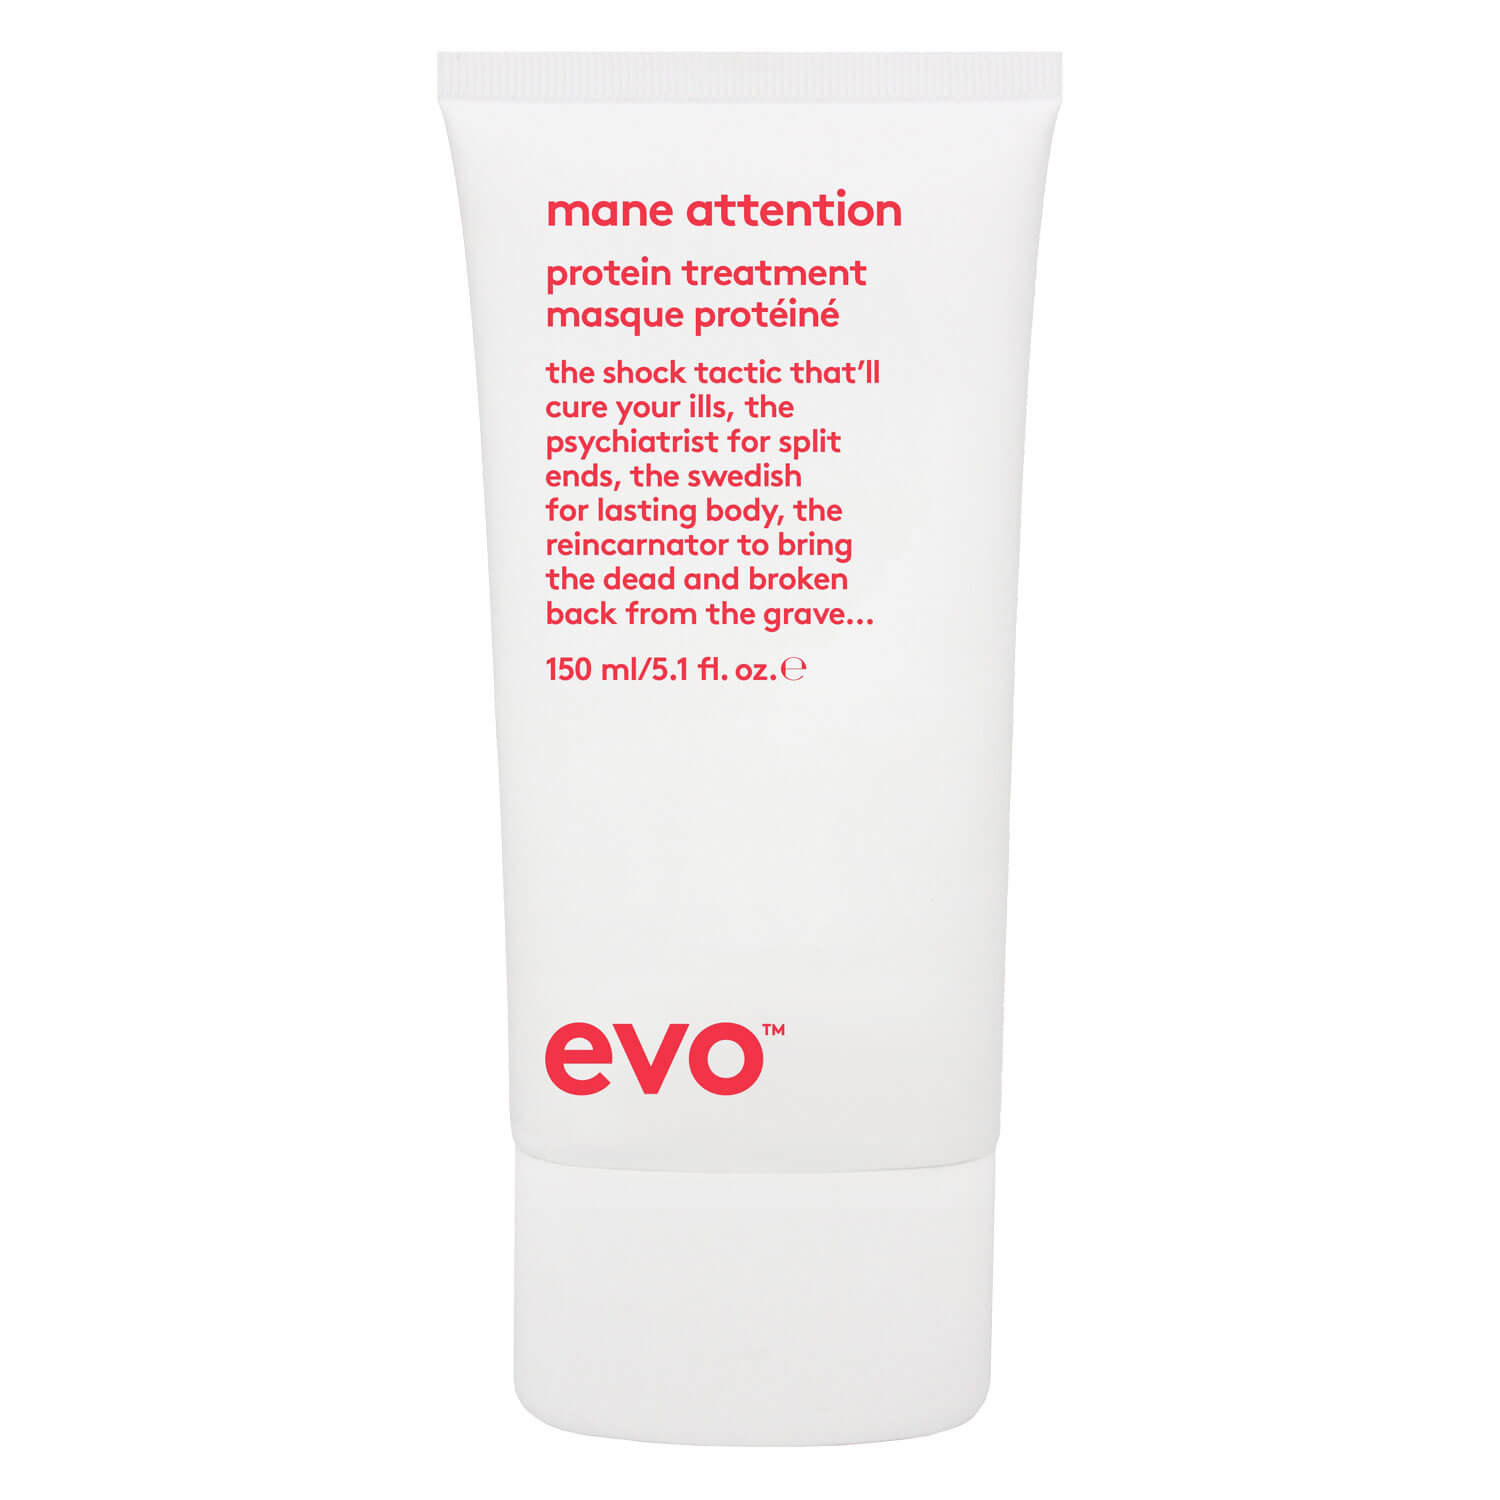 evo care - mane attention protein treatment